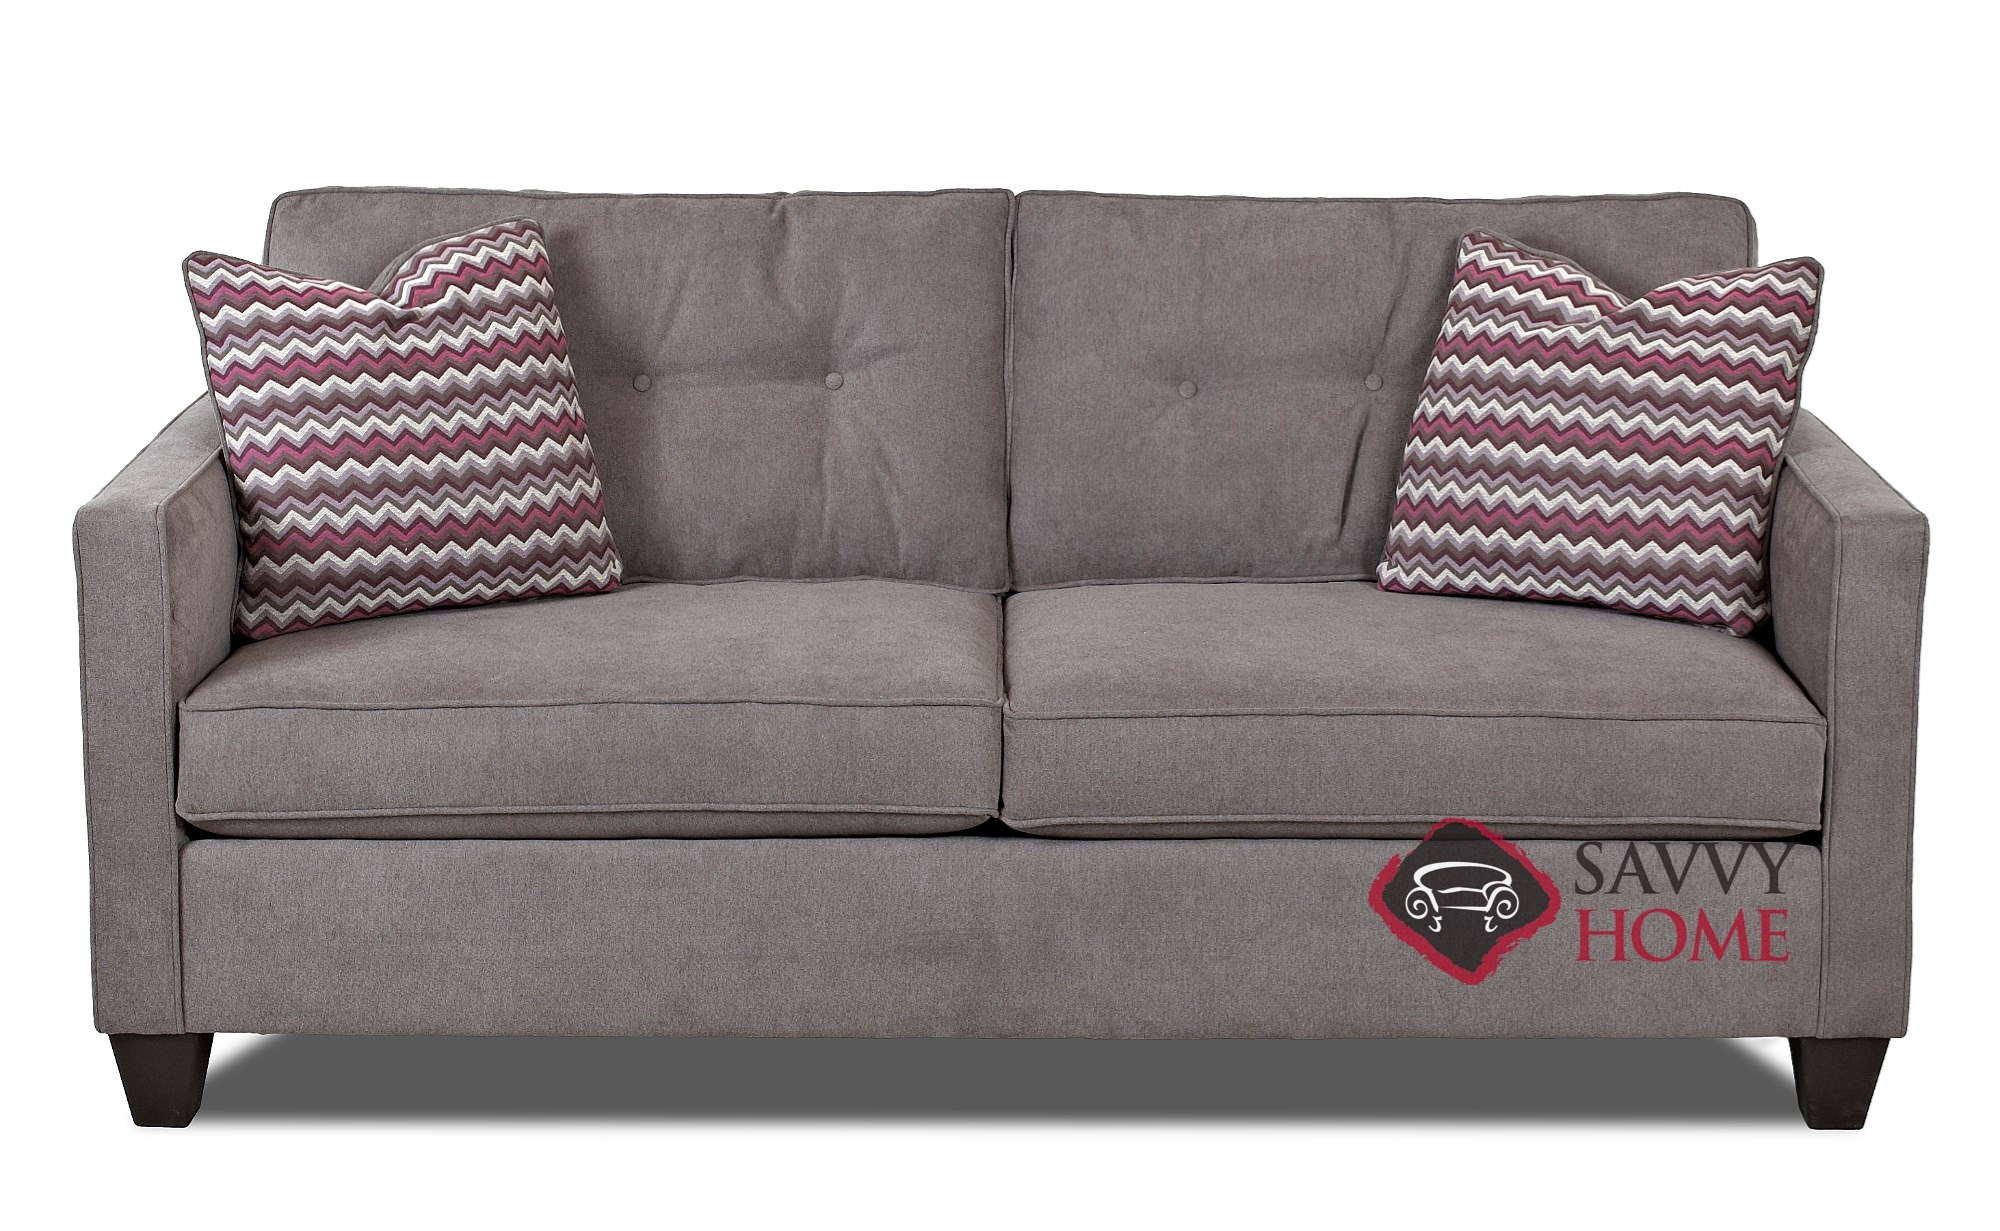 bristol sofa beds office corner sofas uk fabric sleeper queen by savvy is fully